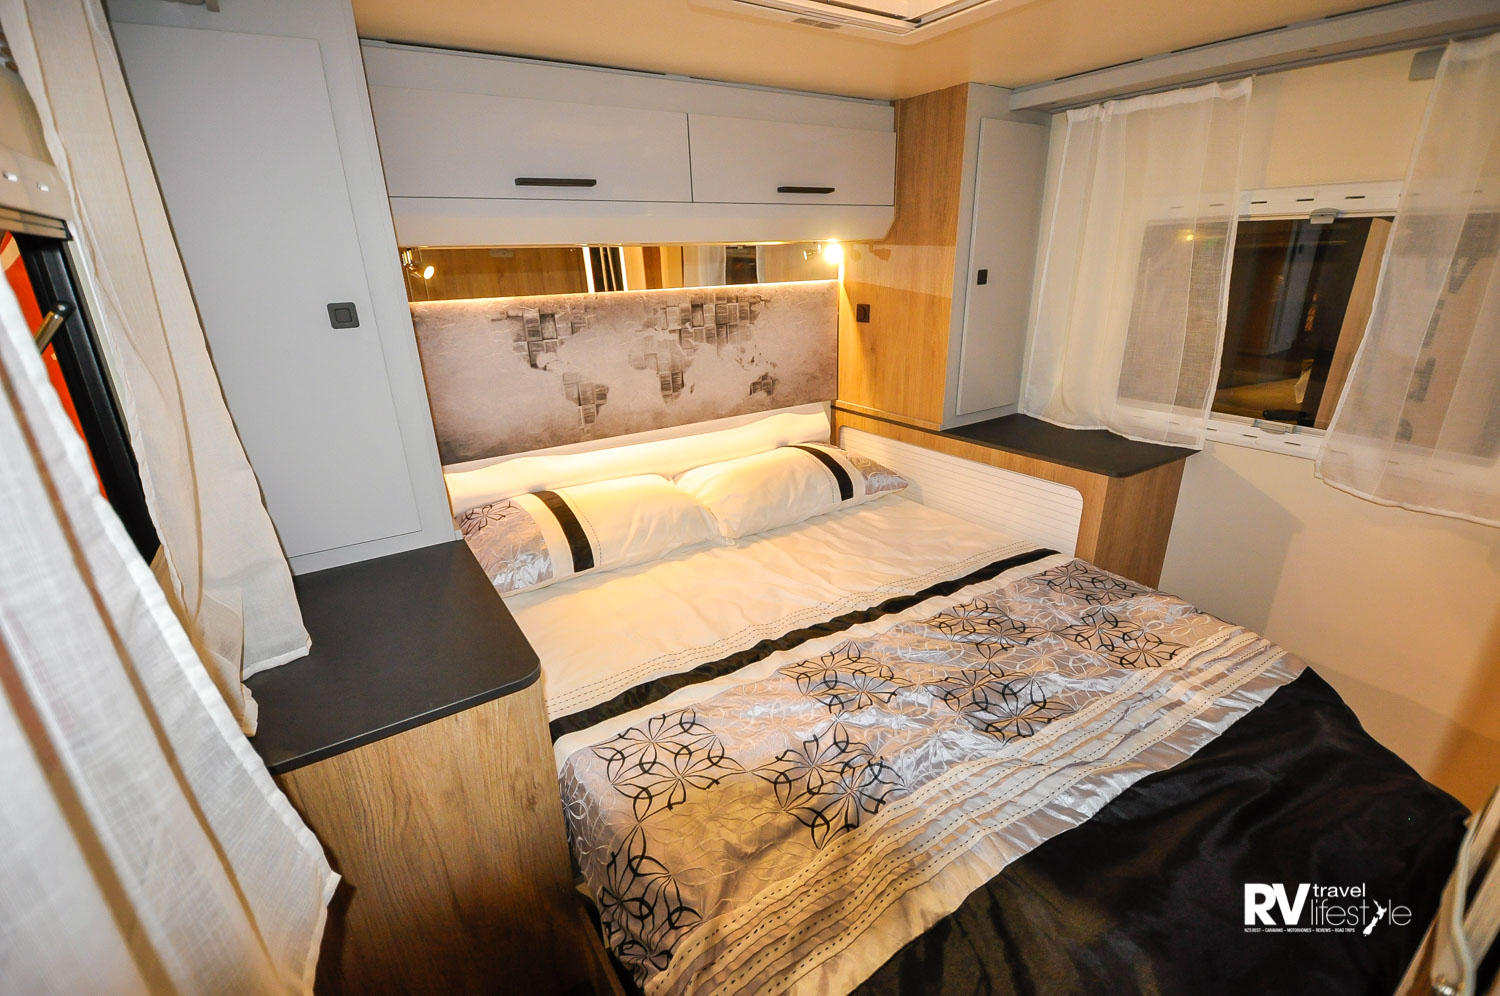 Rear bedroom with island bed, which adjusts in height to offer less or more boot space. Light and bright roomy